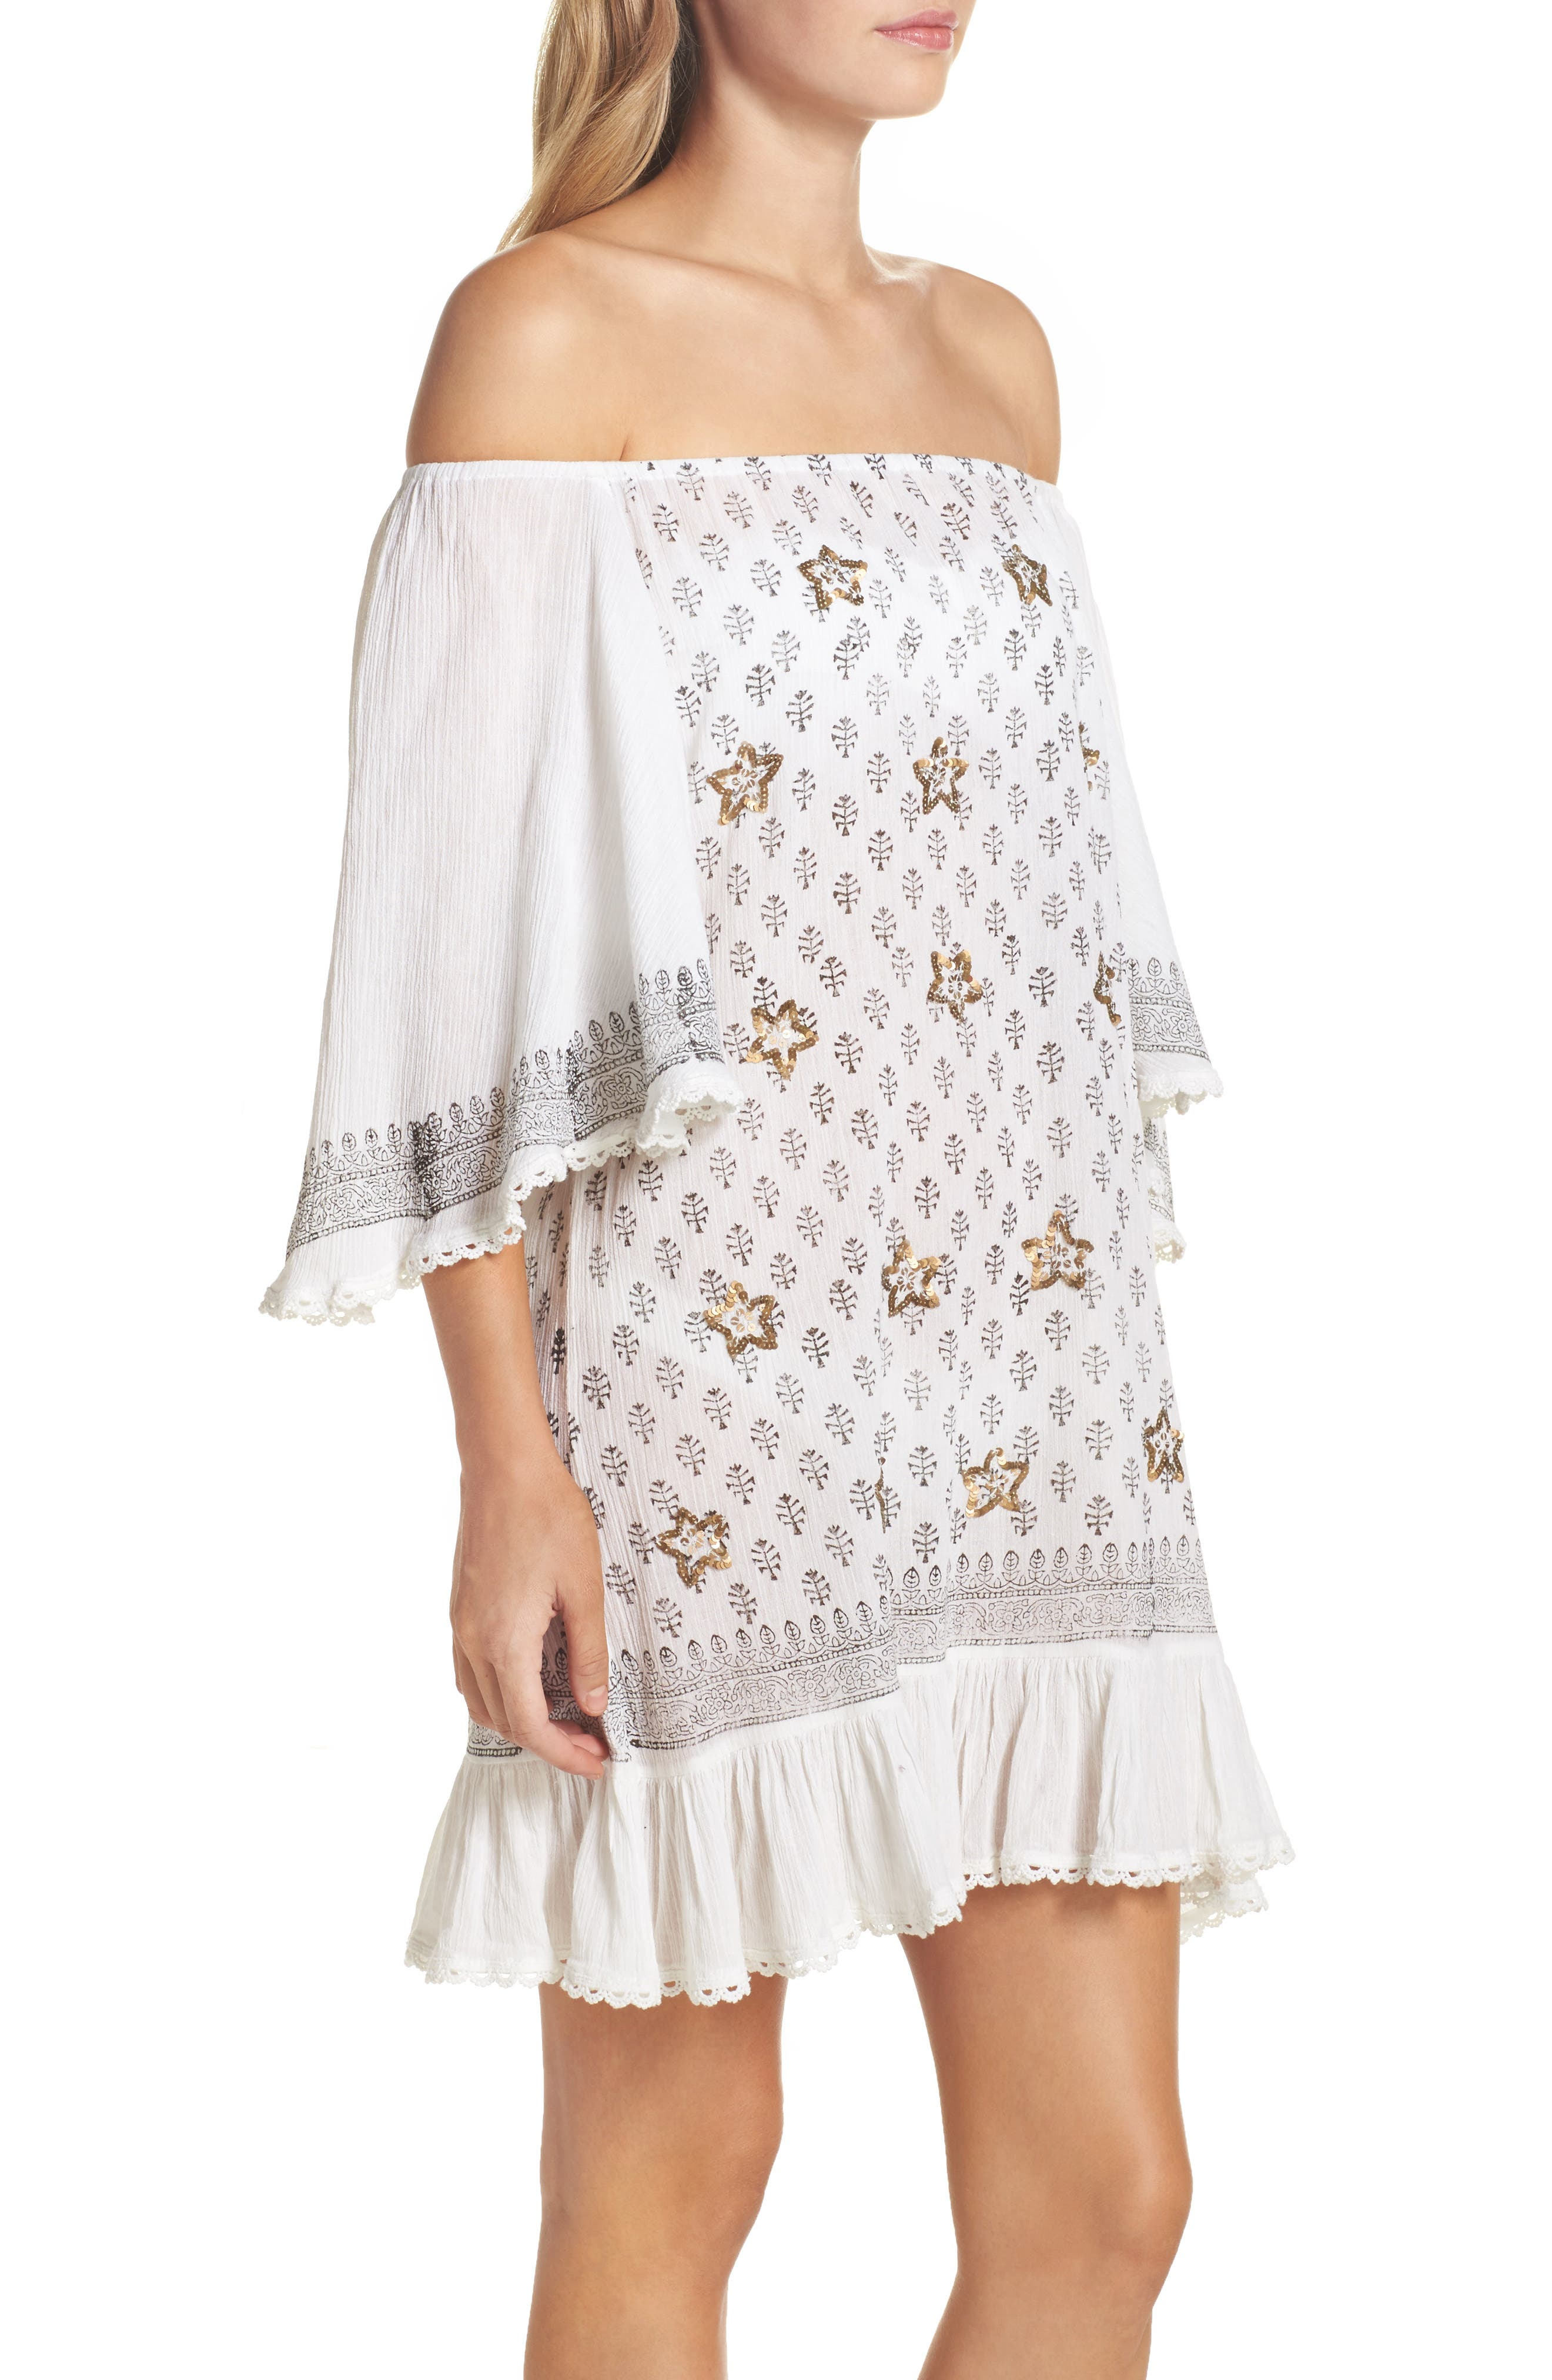 Dreamer Off the Shoulder Cover-Up Dress,                             Alternate thumbnail 3, color,                             100